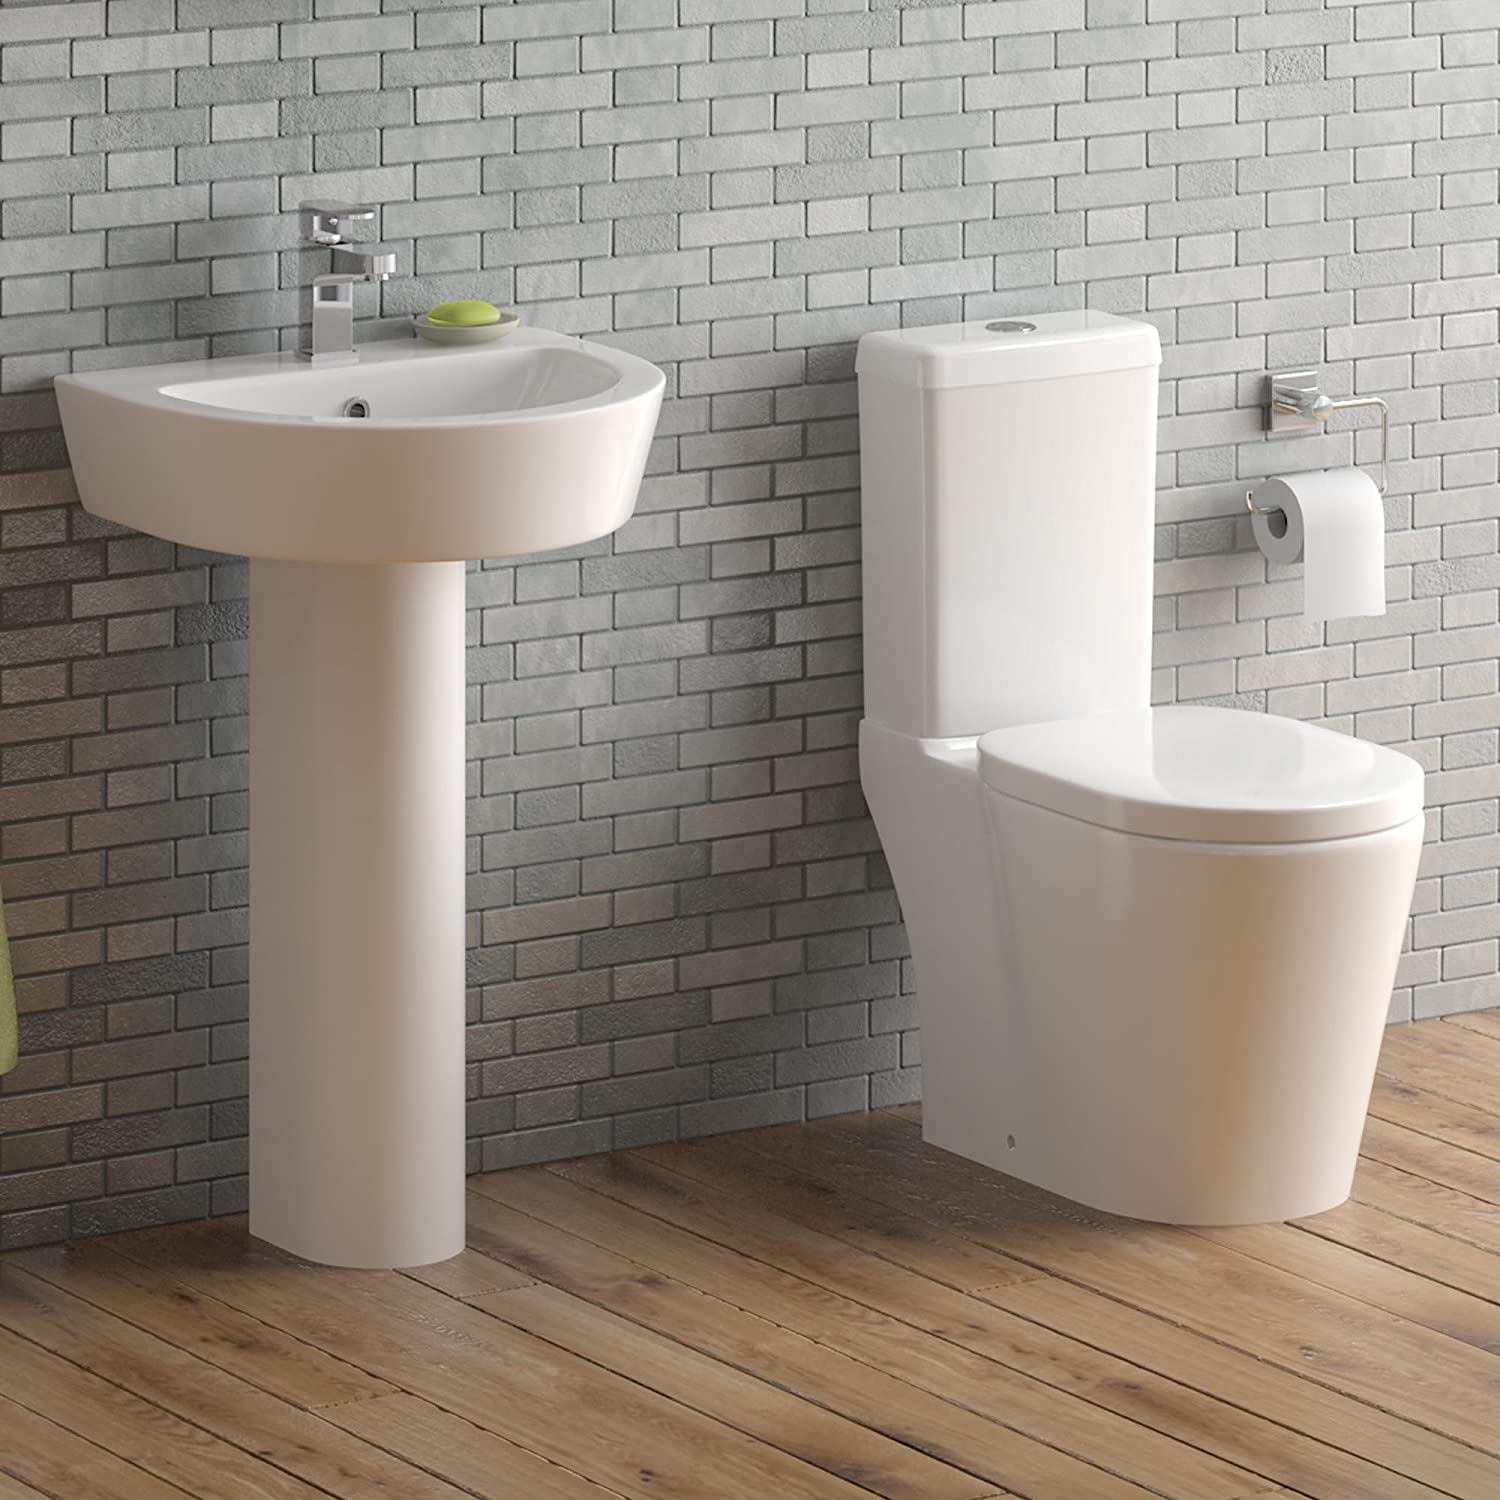 Modern White WC Toilet Cistern Set & Pedestal Basin Sink Bathroom ...